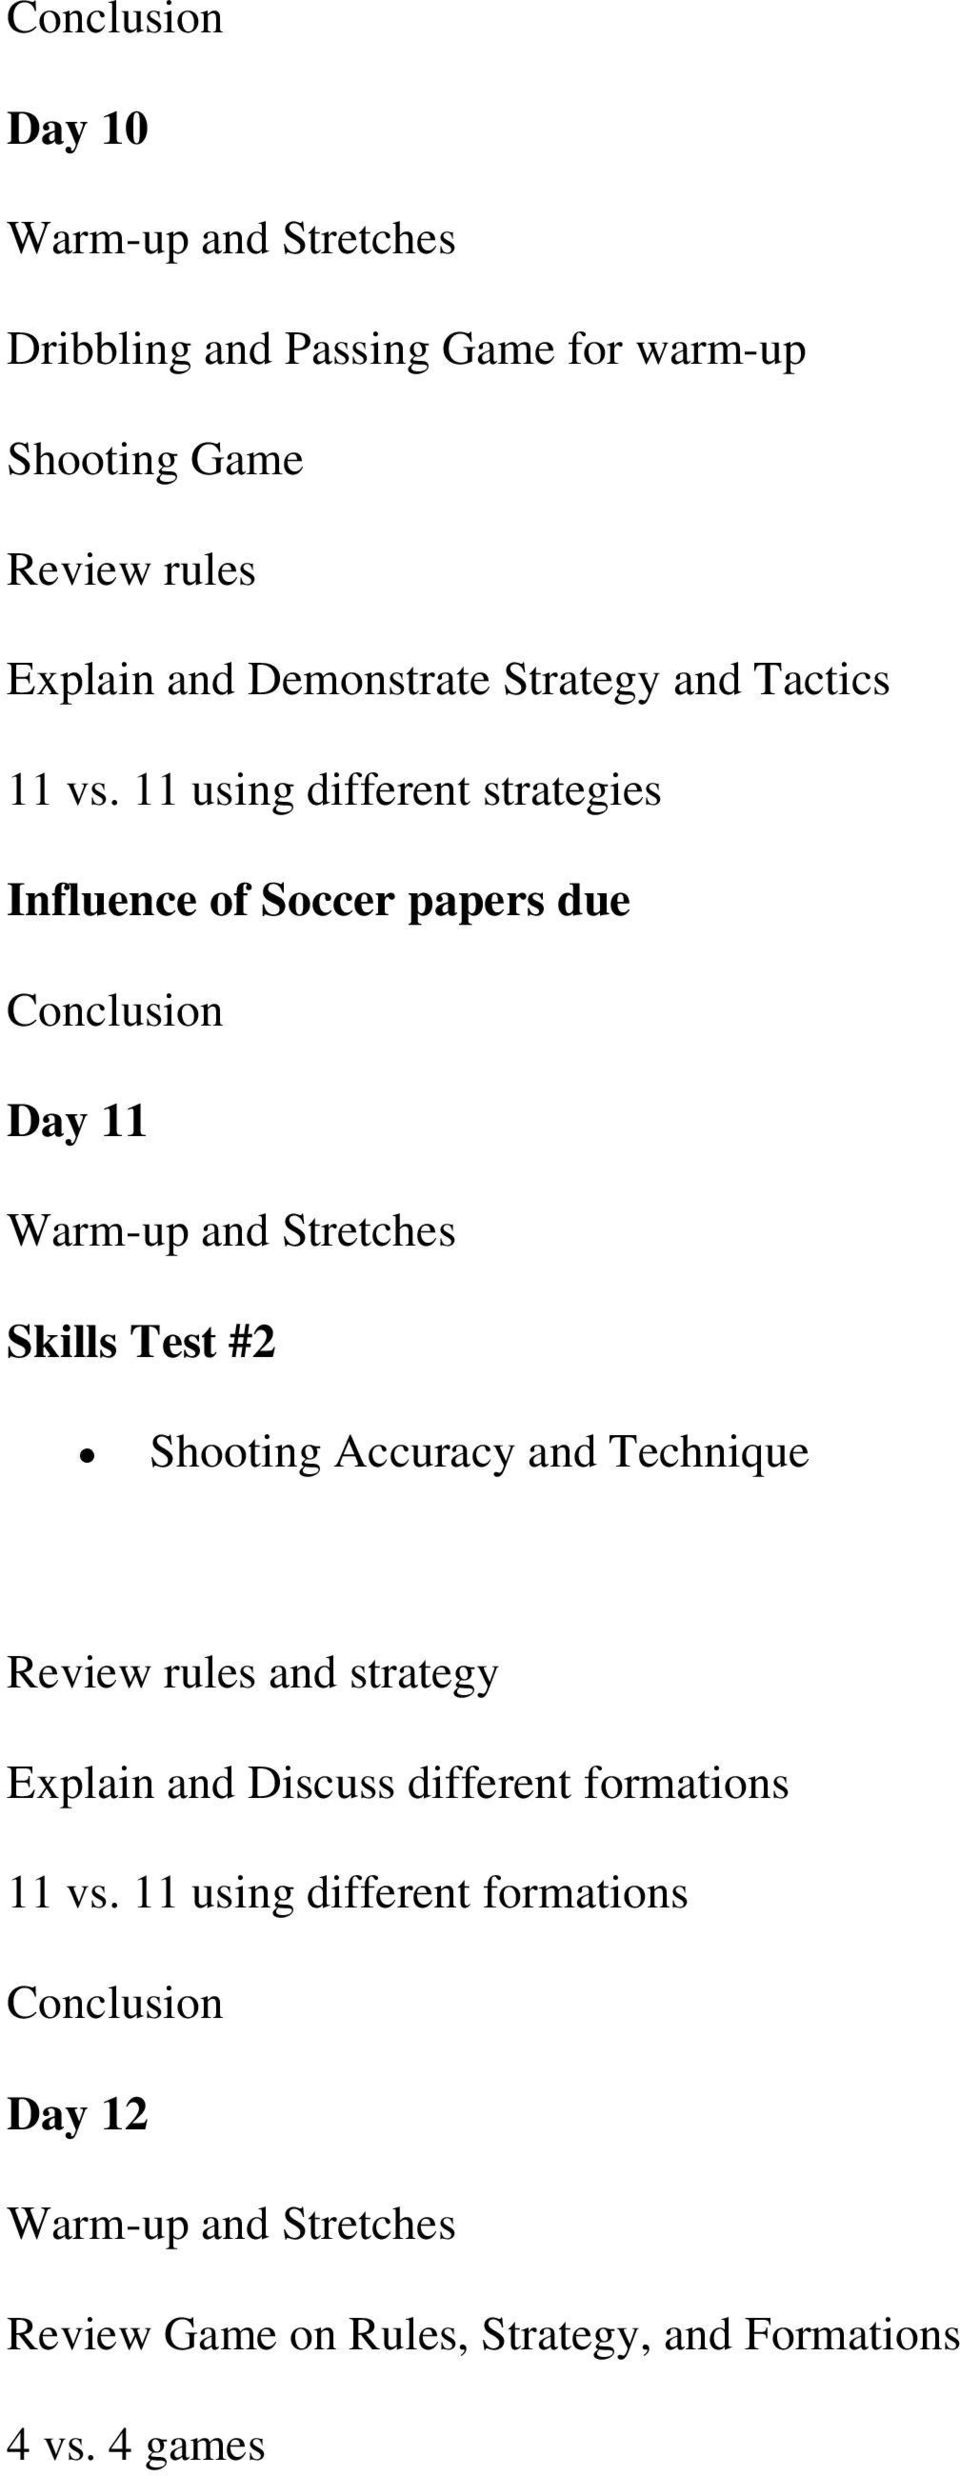 11 using different strategies Influence f Sccer papers due Day 11 Skills Test #2 Shting Accuracy